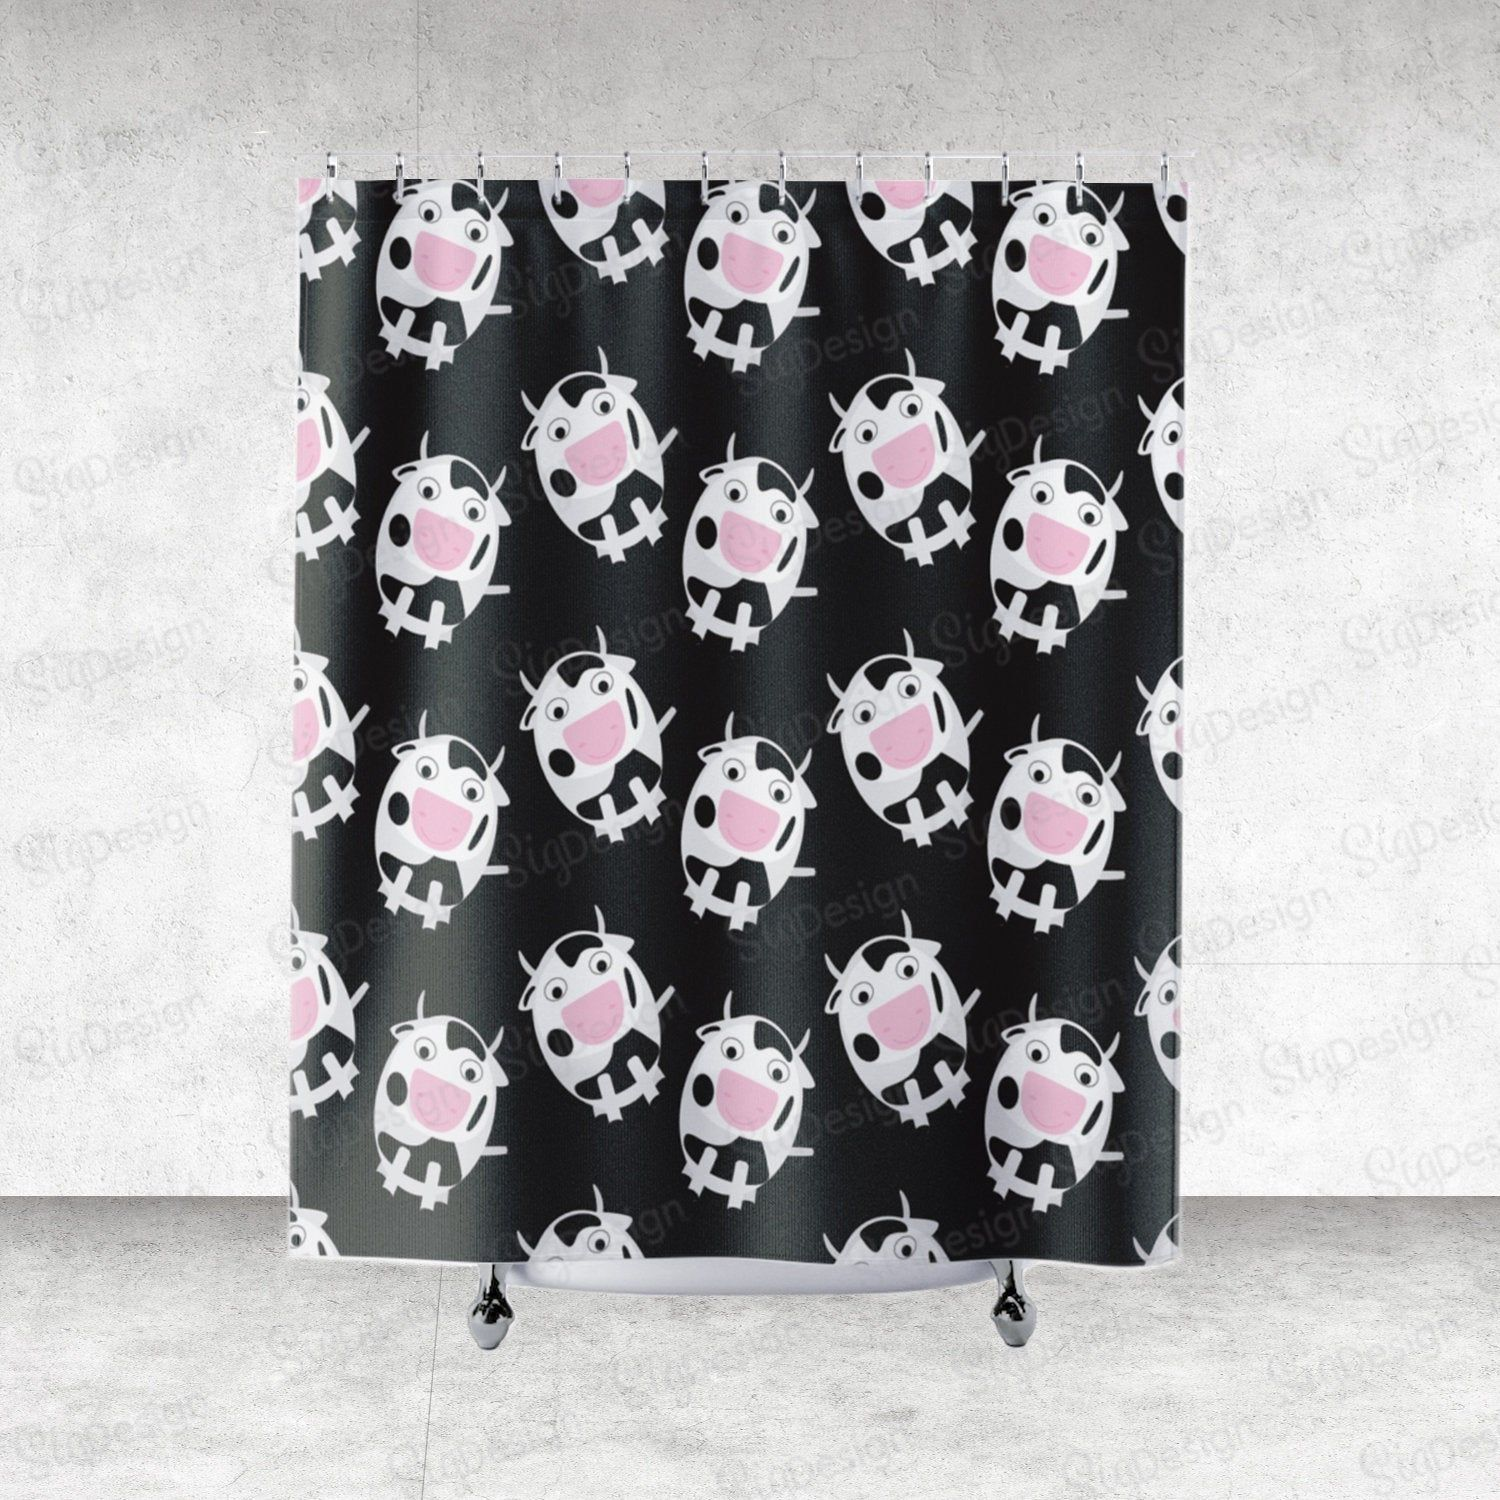 Black And White Cows Shower Curtain Bath Curtain With Cute Cows